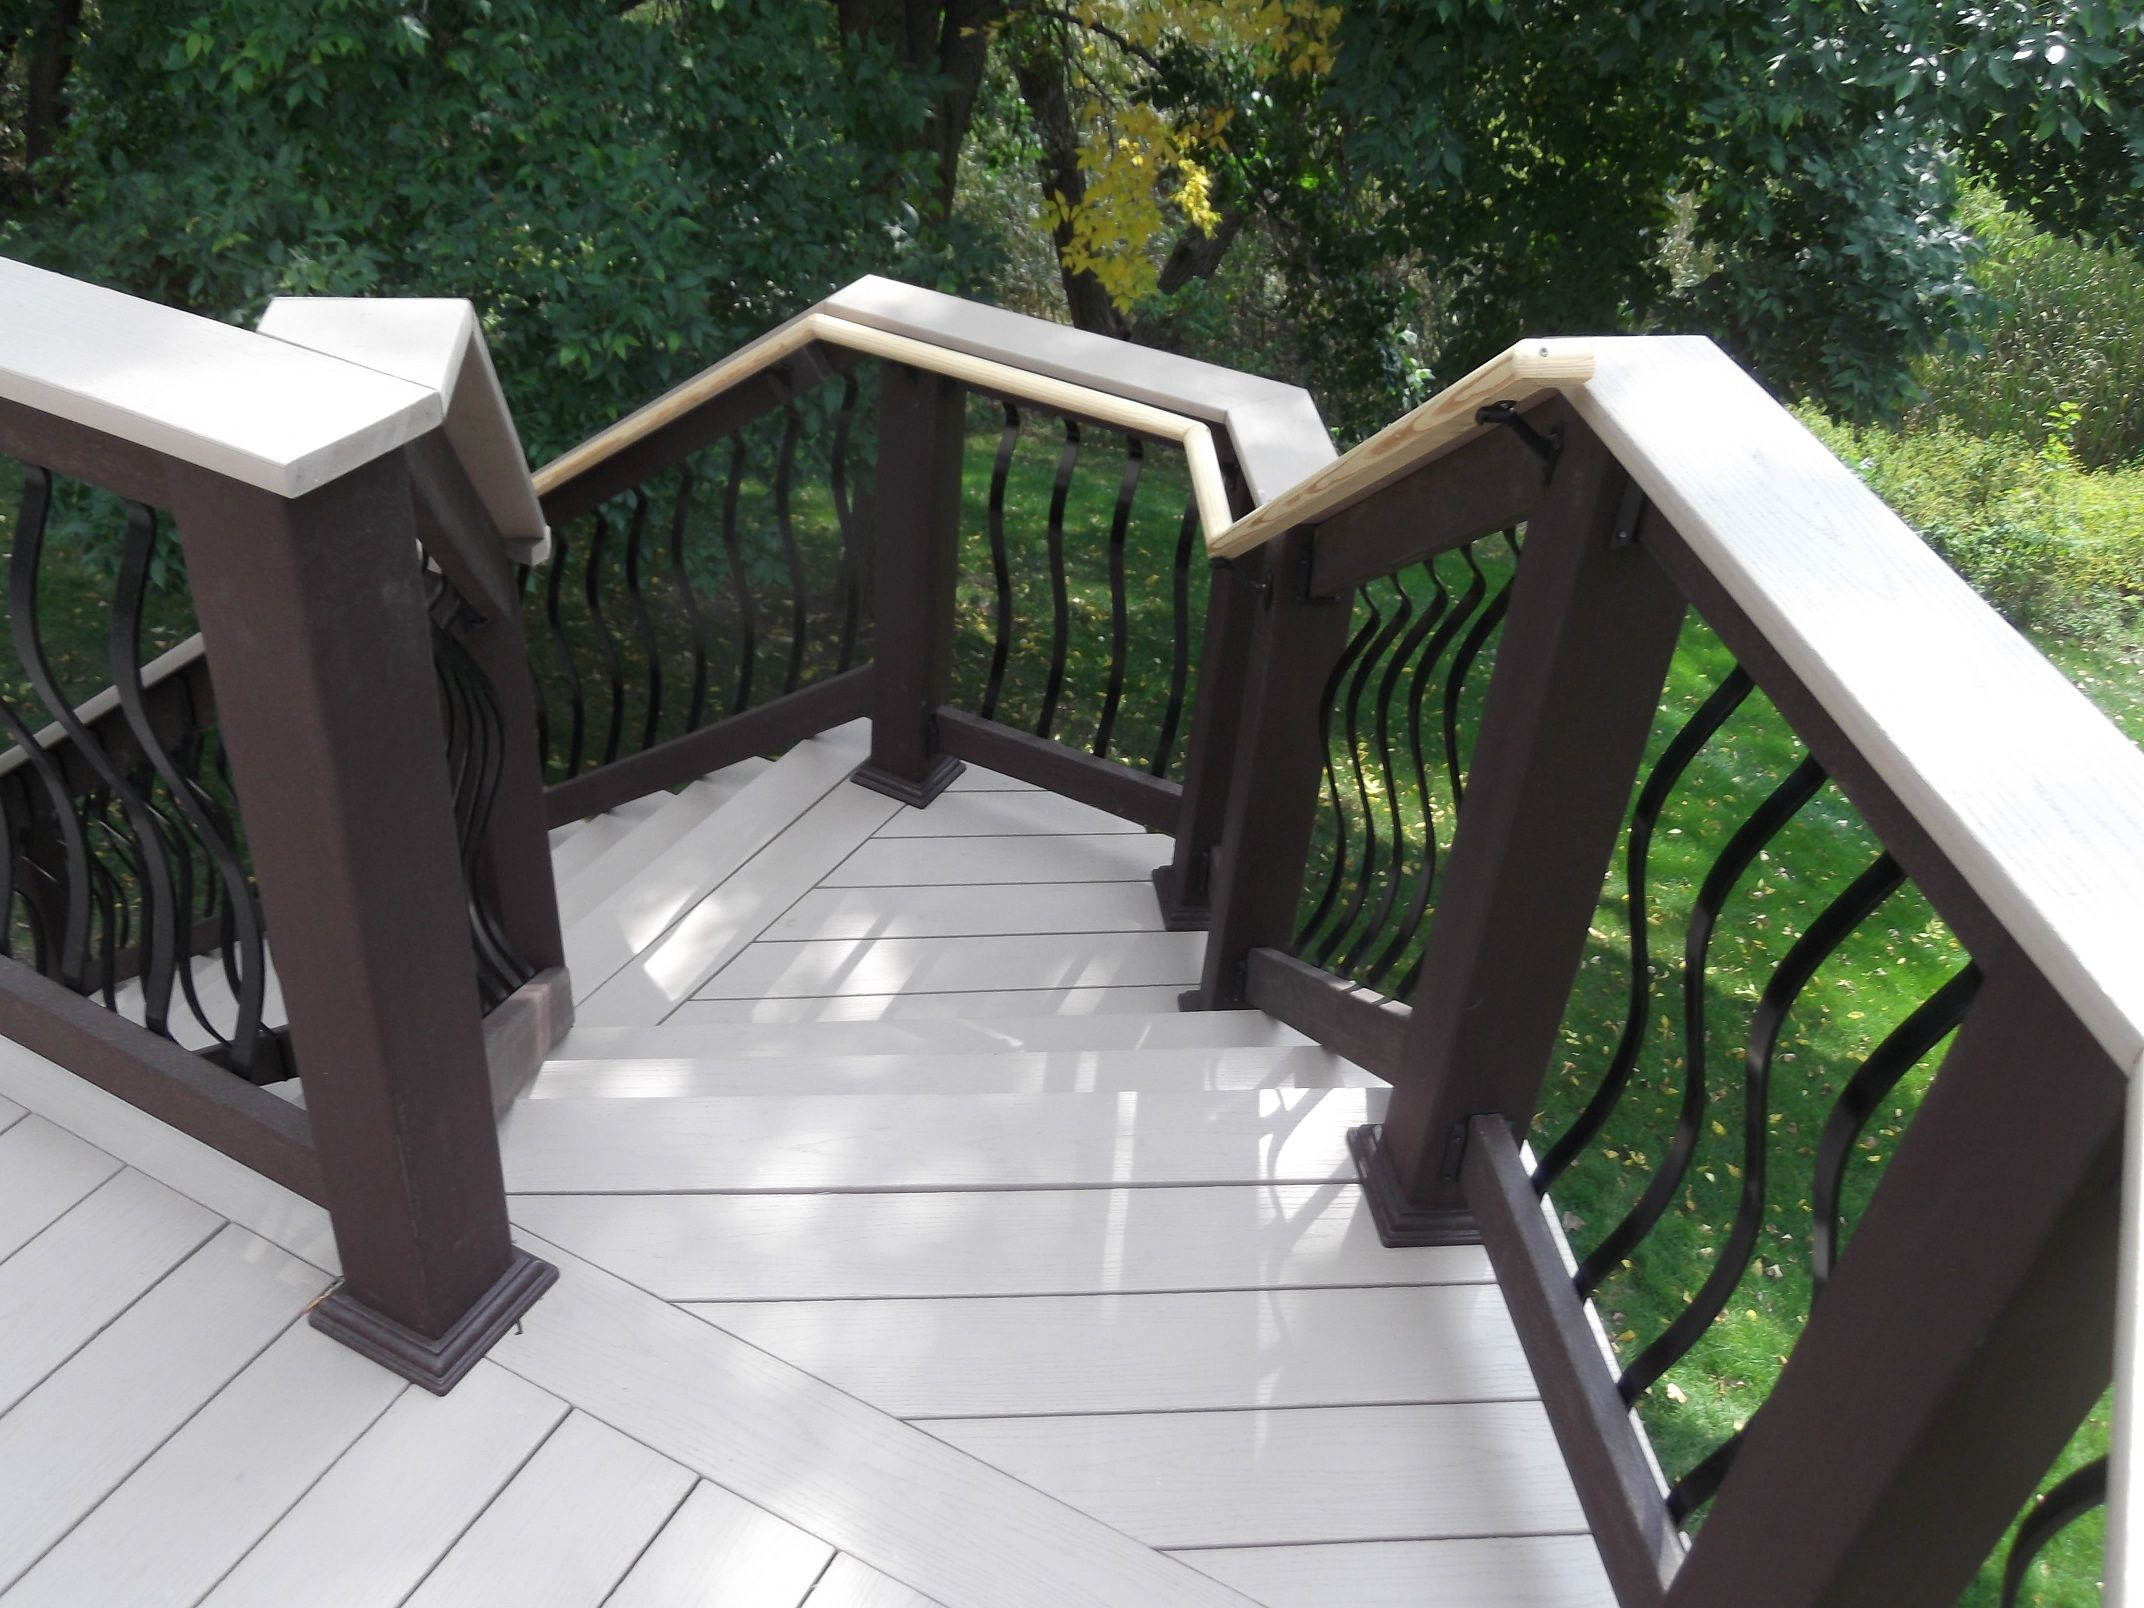 Totally Fresh Trex Decking Colors For Patio Ideas: Cool Trex Decking Colors With Deck Railings Design For Patio Ideas